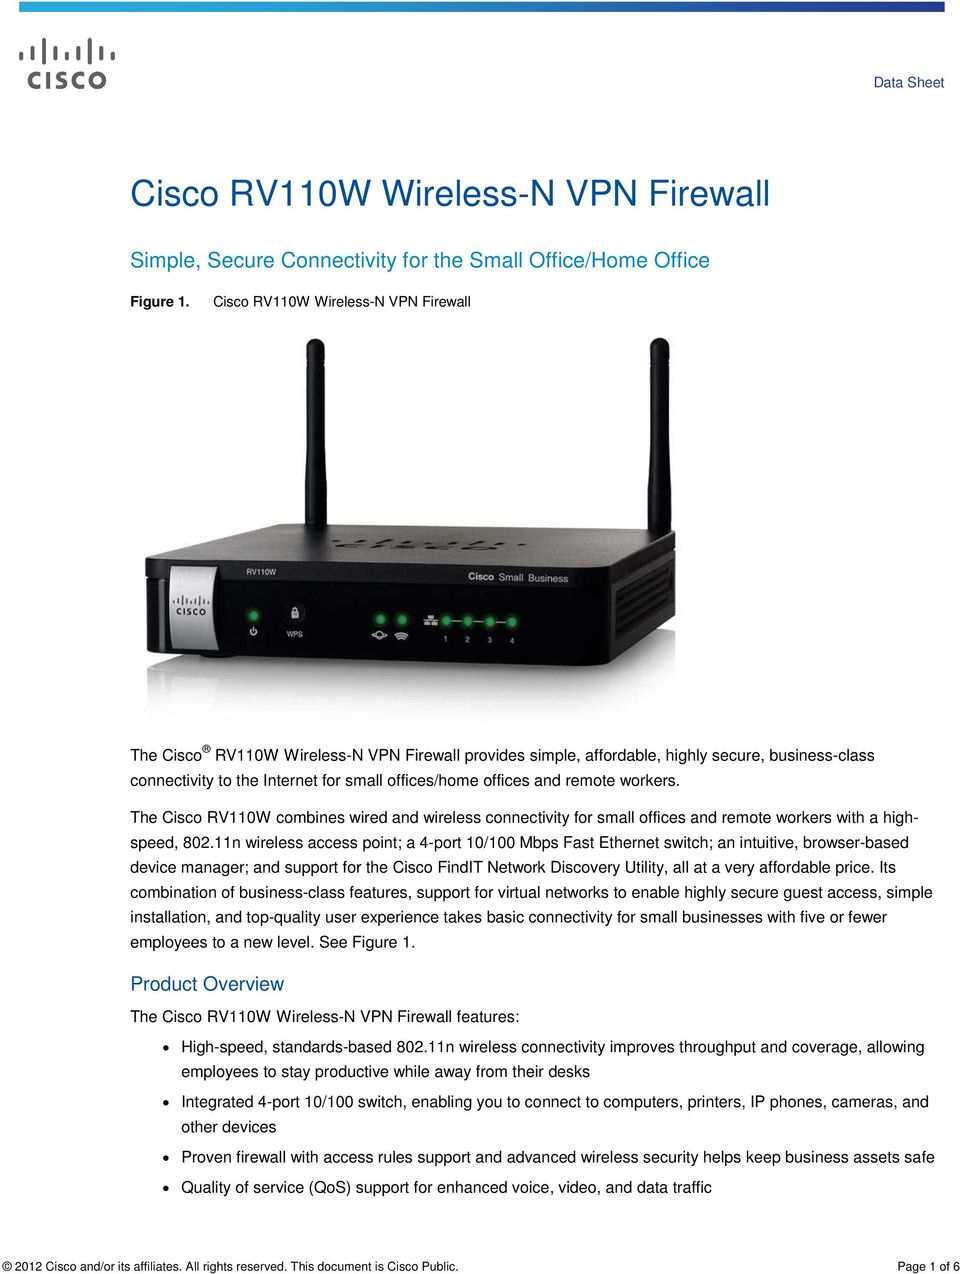 Cisco Rv110w Wireless N Vpn Firewall Pdf Diagram The Combines Wired And Connectivity For Small Offices